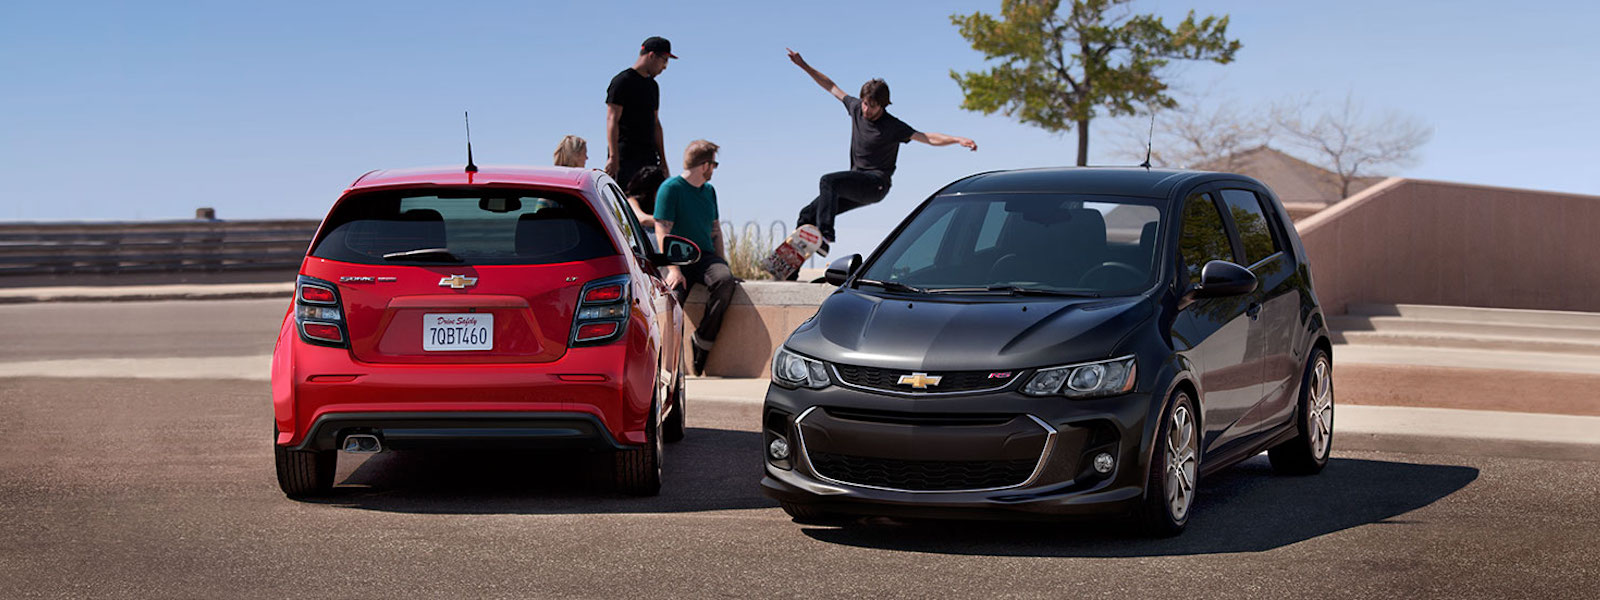 Teens are skateboarding next to a red and a gray 2017 Chevy Sonic at a park.